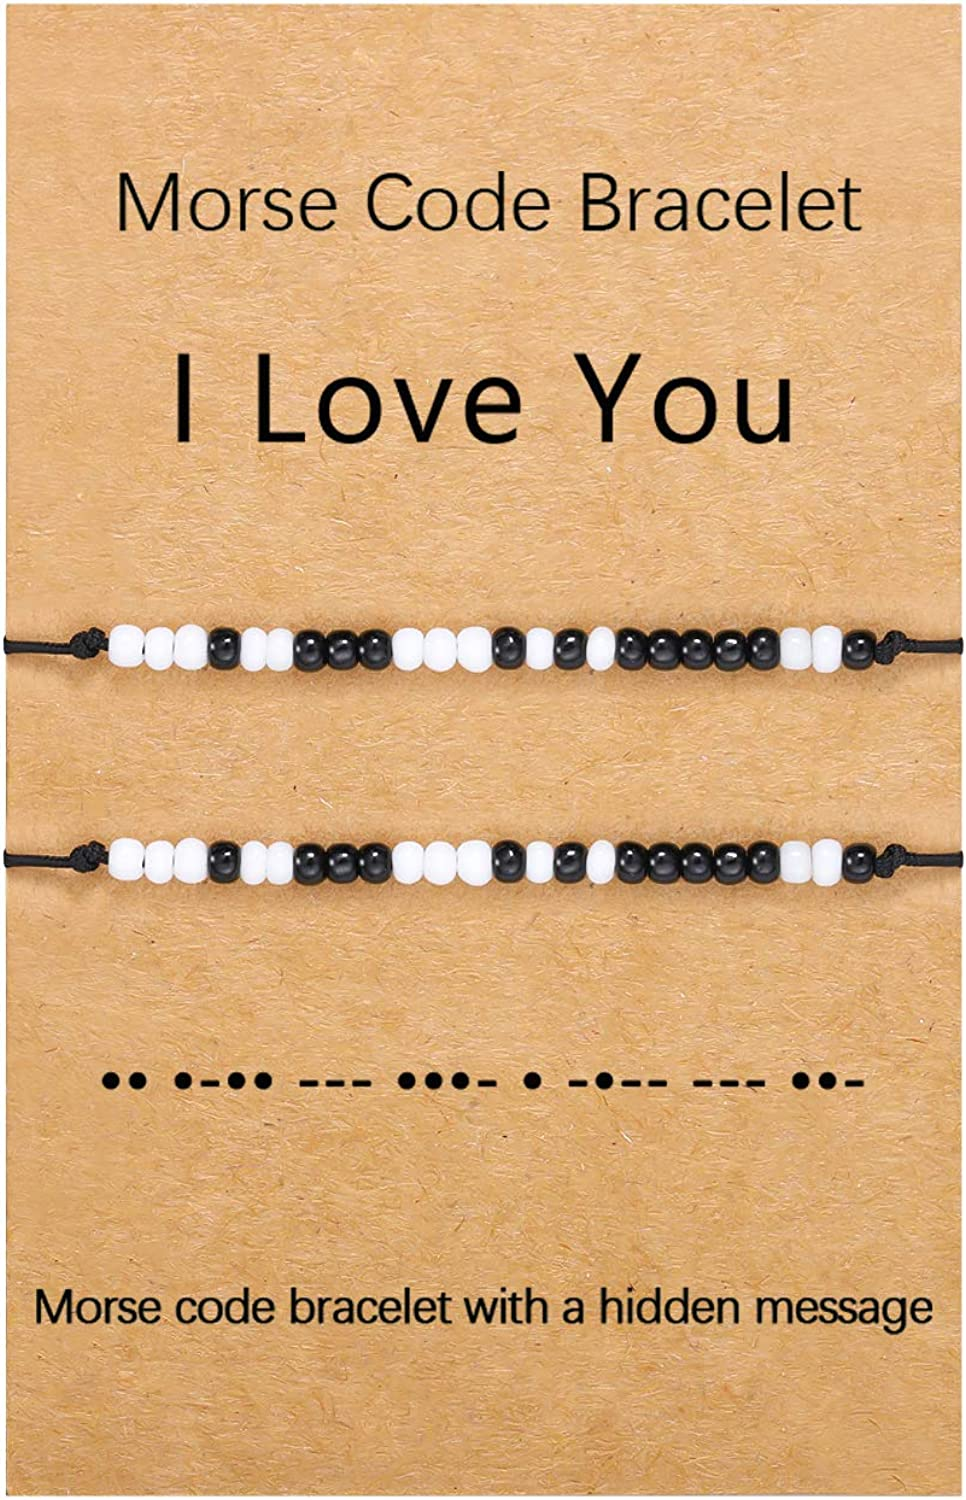 UNGENT THEM I Love You Morse Code Bracelet Couples Matching Bracelets Relationship Beads Bracelet Set Jewelry Gifts for Him and Her, Boyfriend and Girlfriend, Men Women